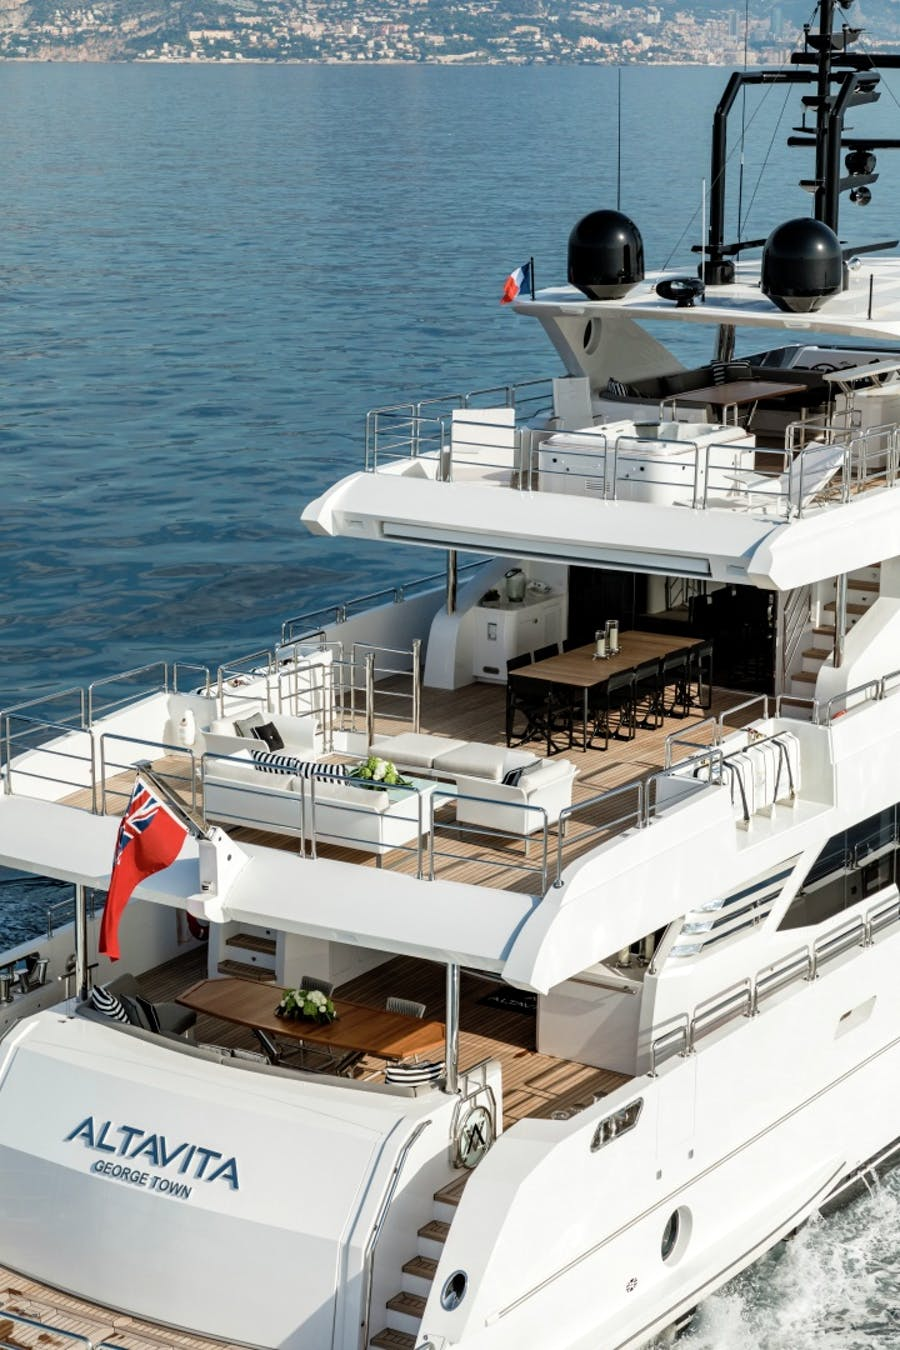 Features for ALTAVITA Private Luxury Yacht For sale